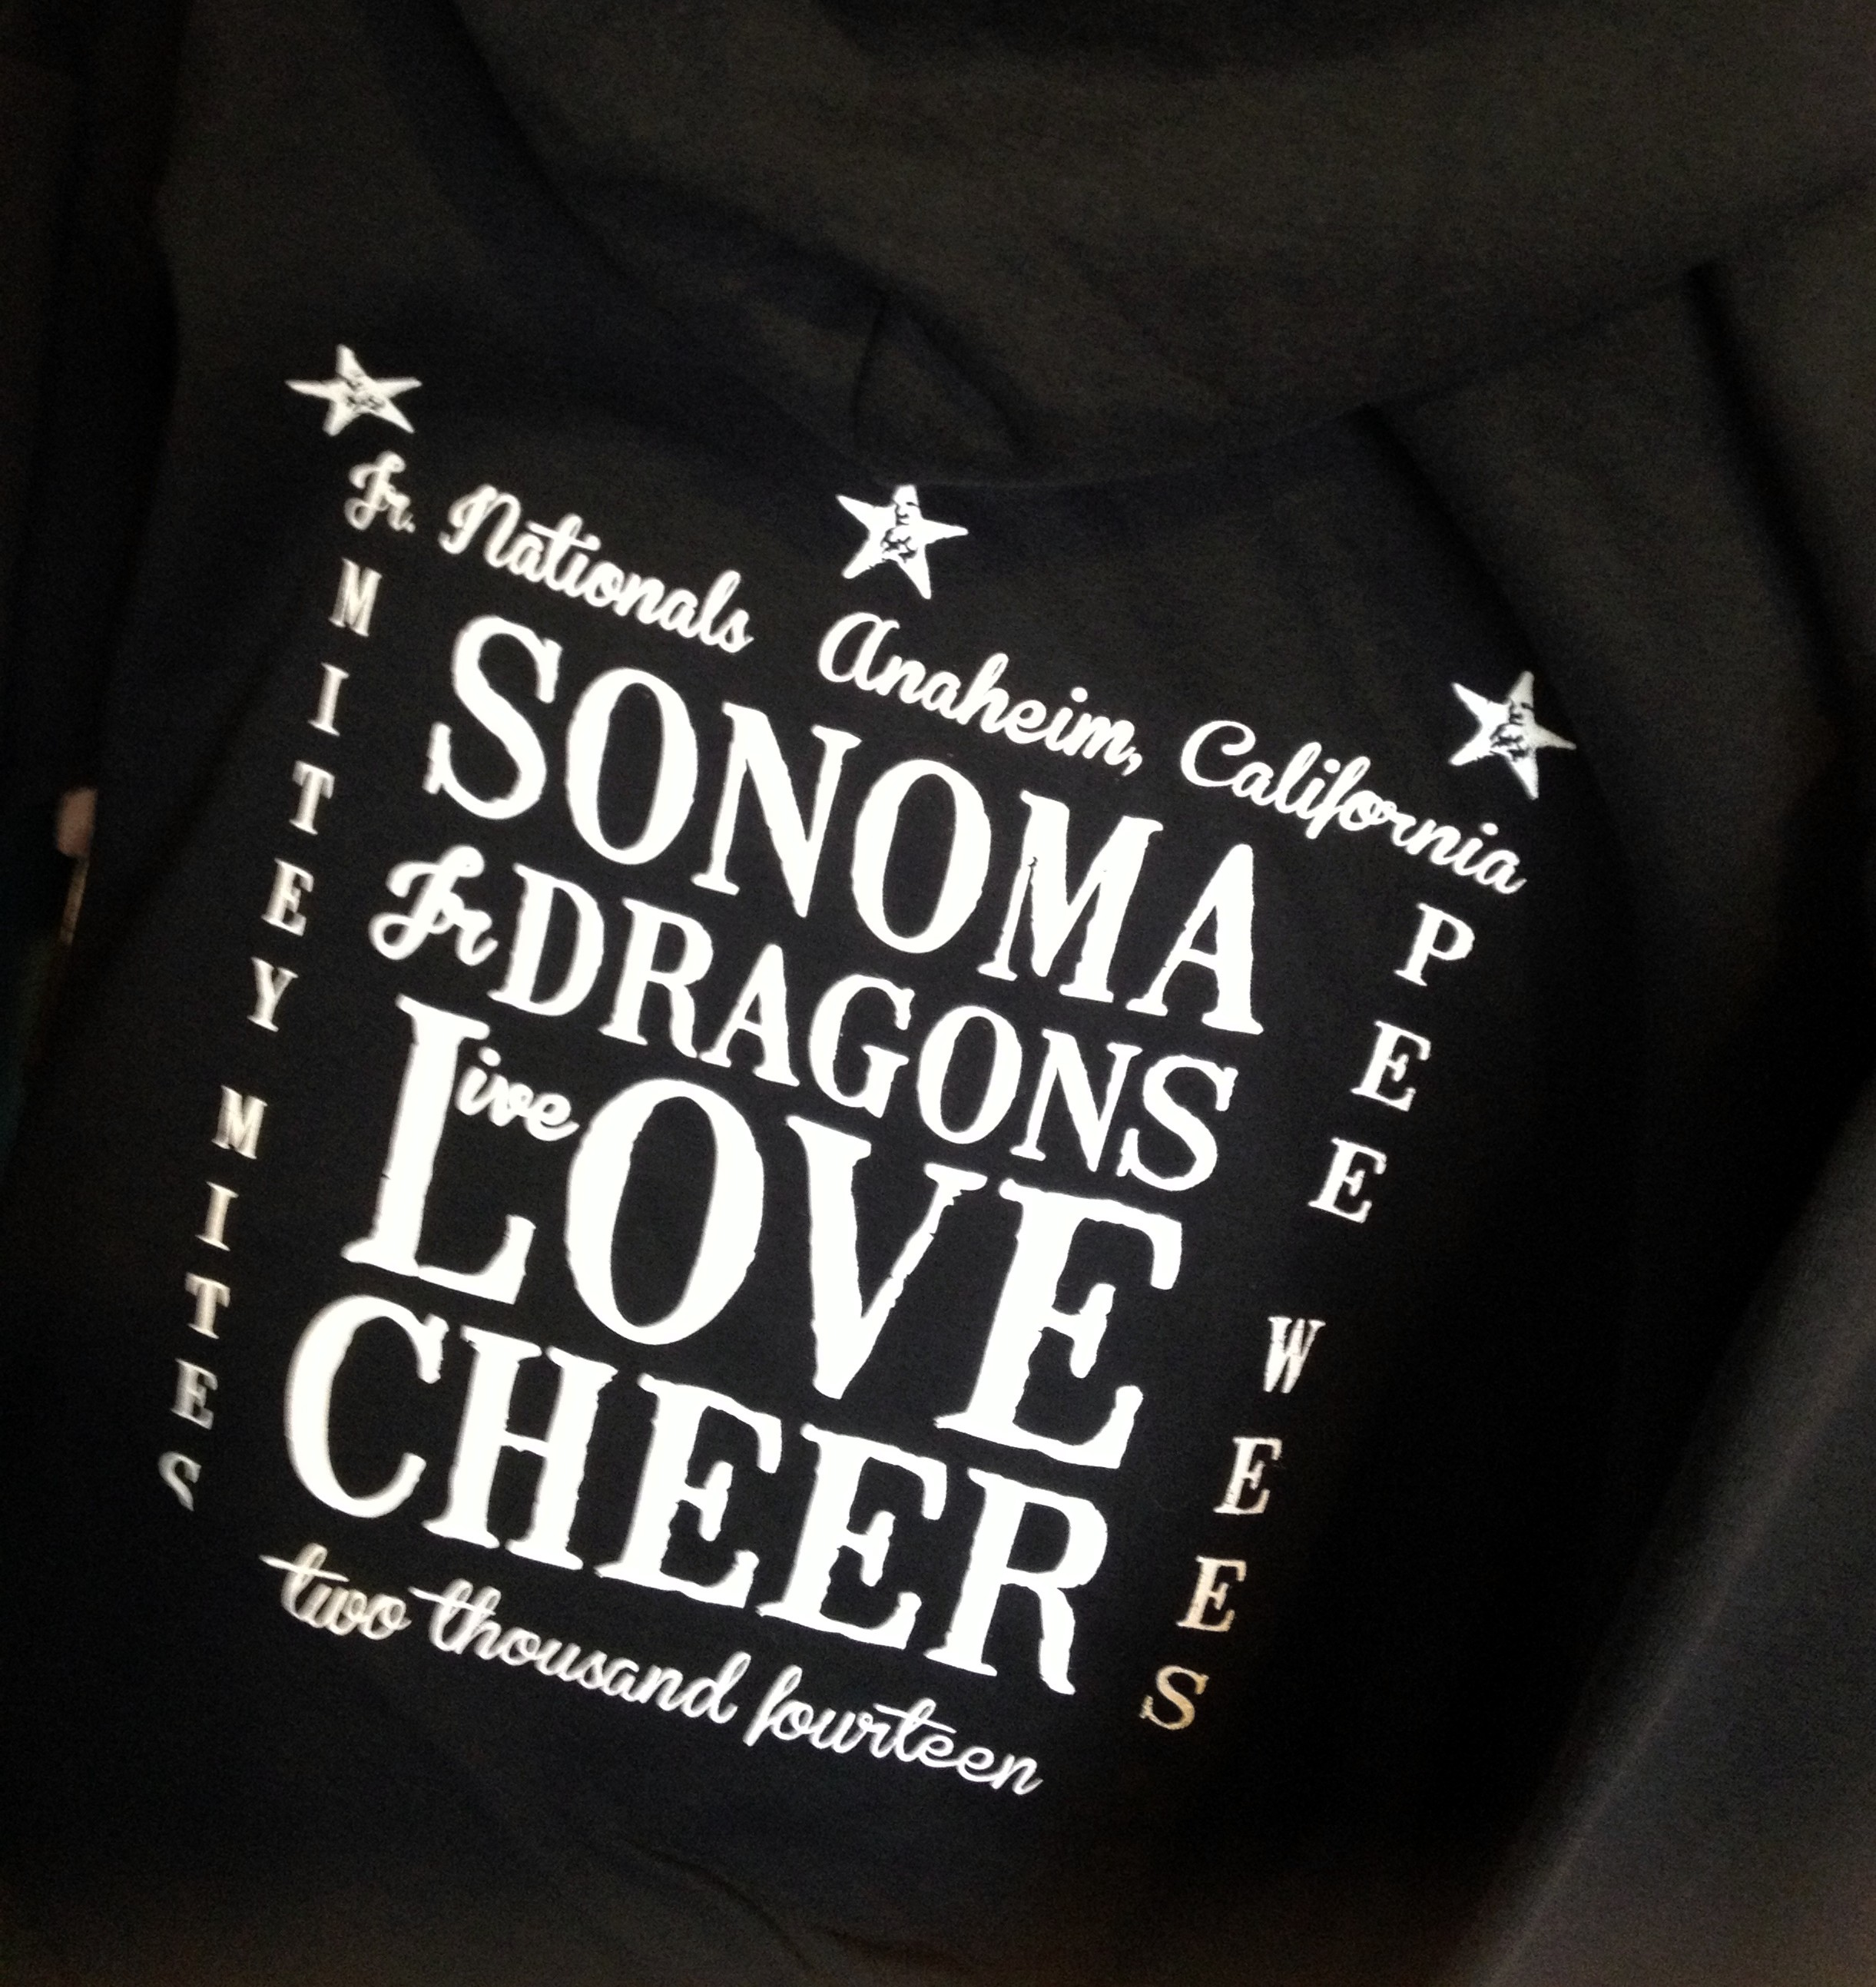 Sonoma Jr. Dragons Cheer